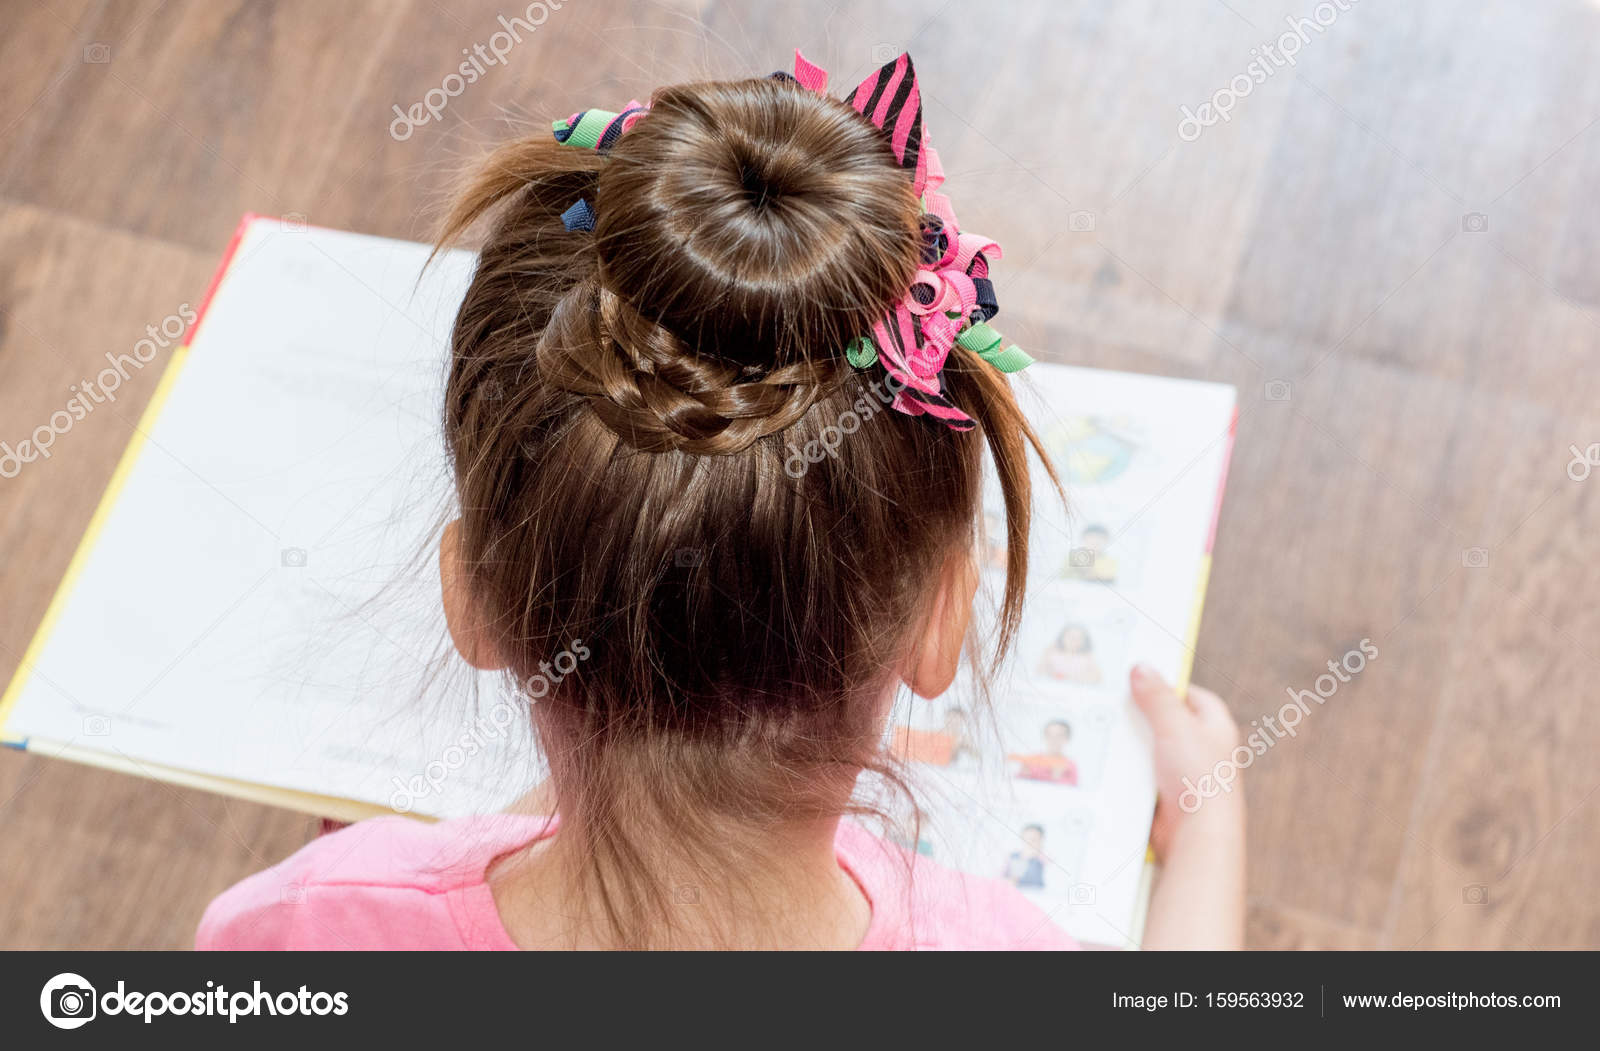 Marvelous Hairstyle Little Girl Braided Hair Stock Photo C Magda Schematic Wiring Diagrams Phreekkolirunnerswayorg